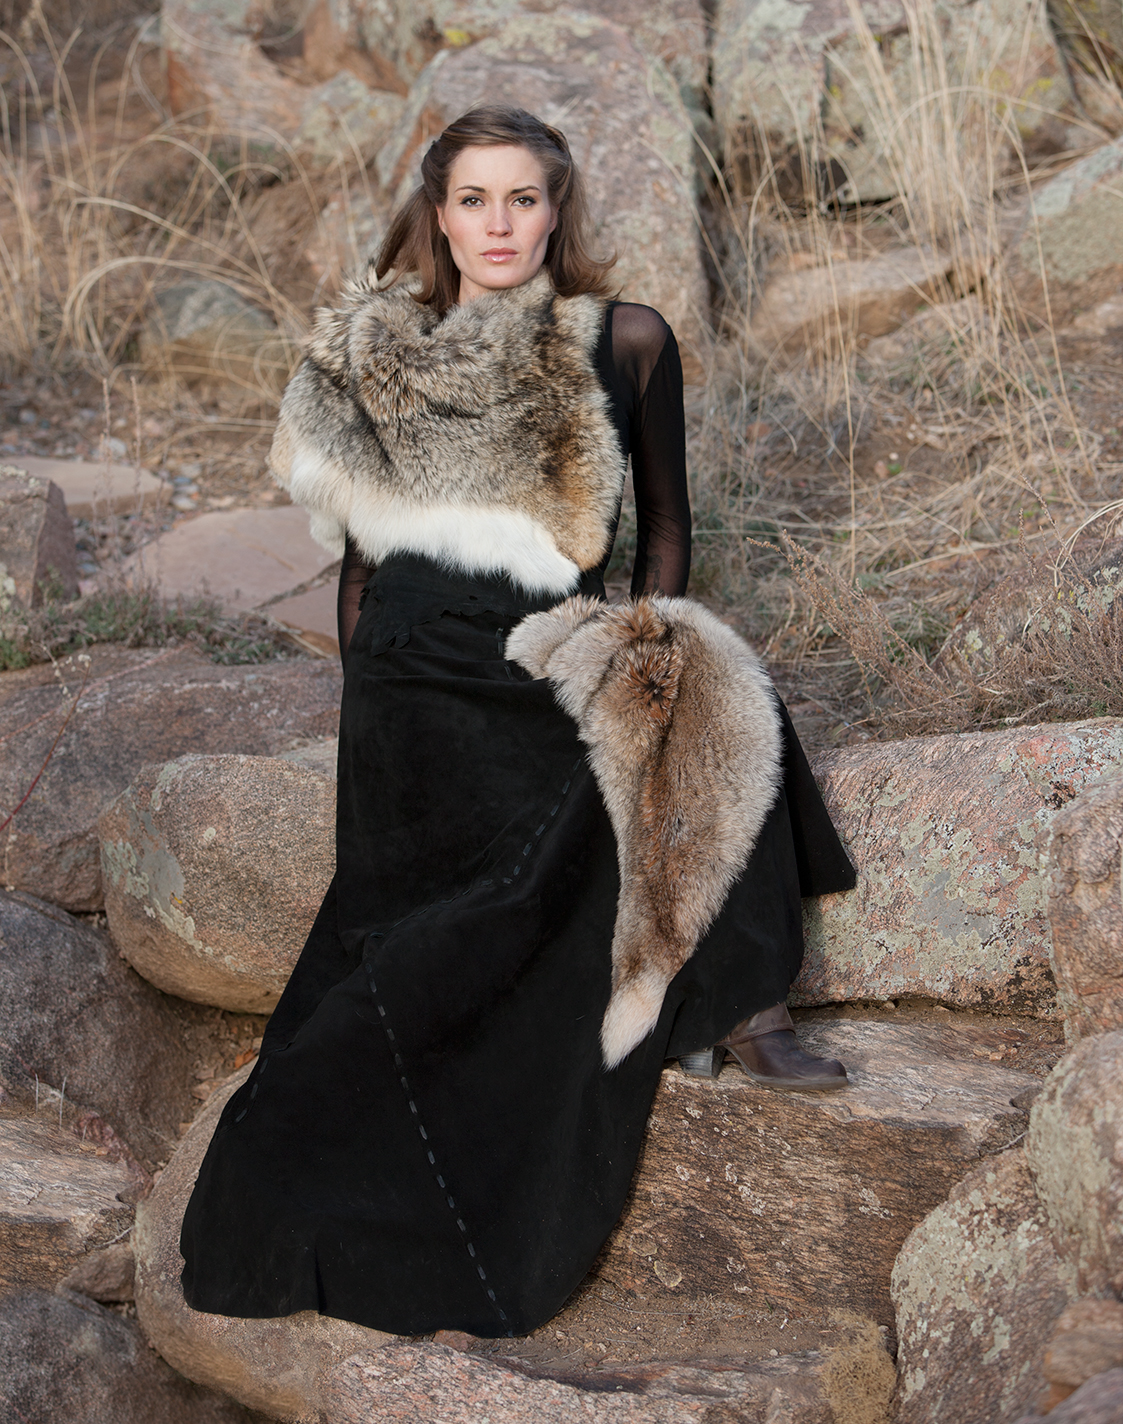 12282013_CoyoteCouture_Fur-Stole-and-Fur-Skirt-267.jpg